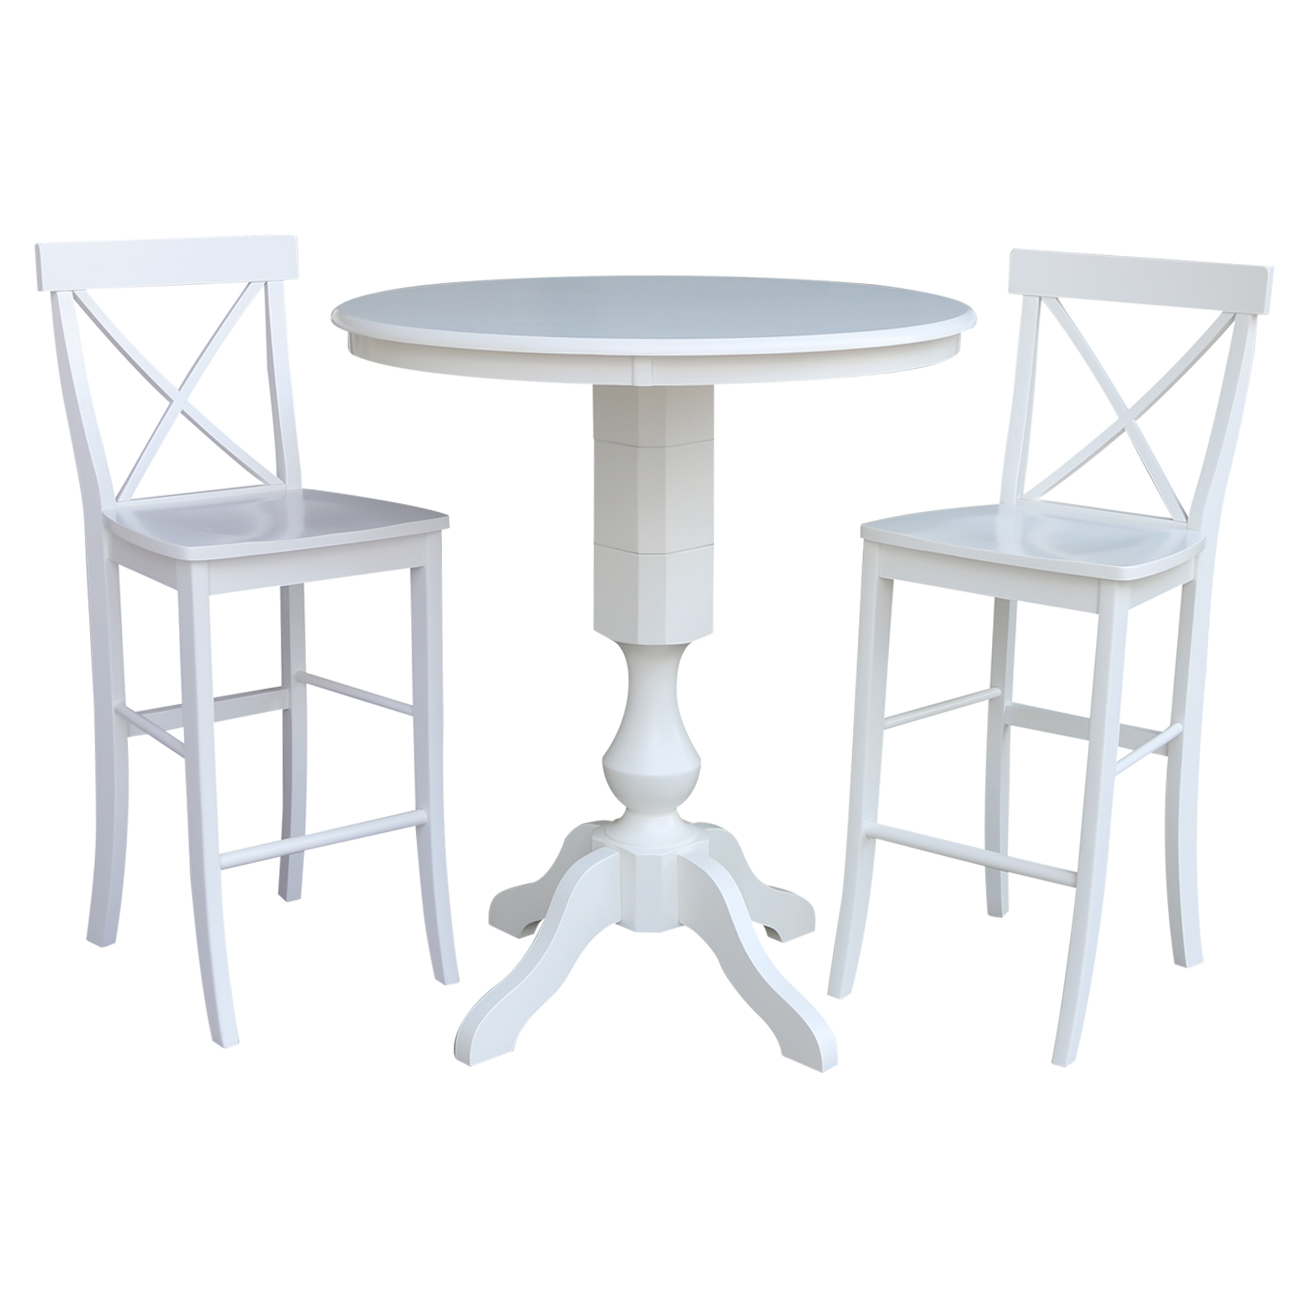 """36"""" Round Top Bar Height Table and 2 X-back Stools – White - 3 Piece Set"""